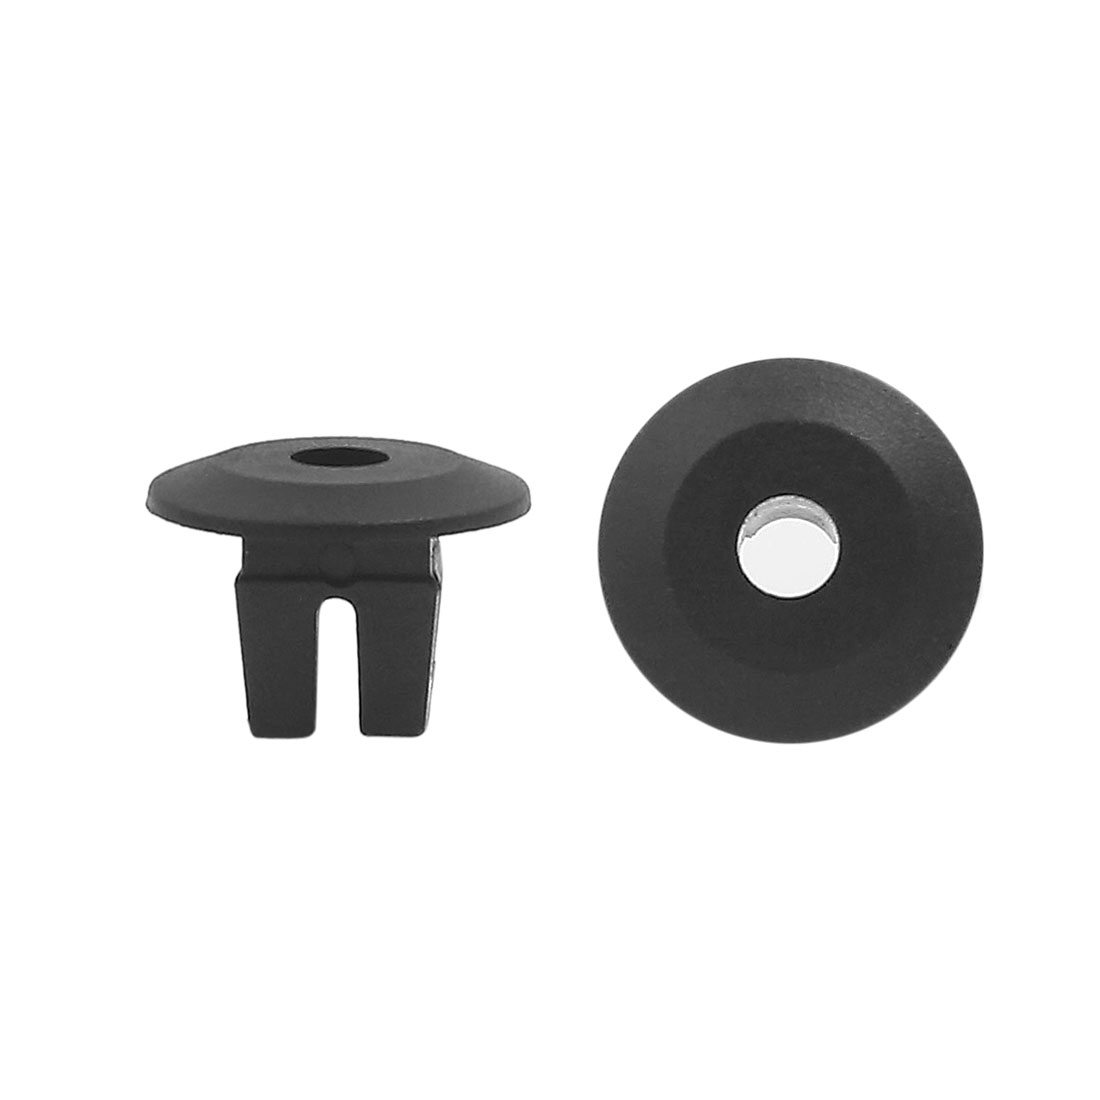 50 Pcs Black 8 x 8mm Dia Hole Plastic Screw Fender Body Door Rivets for Car